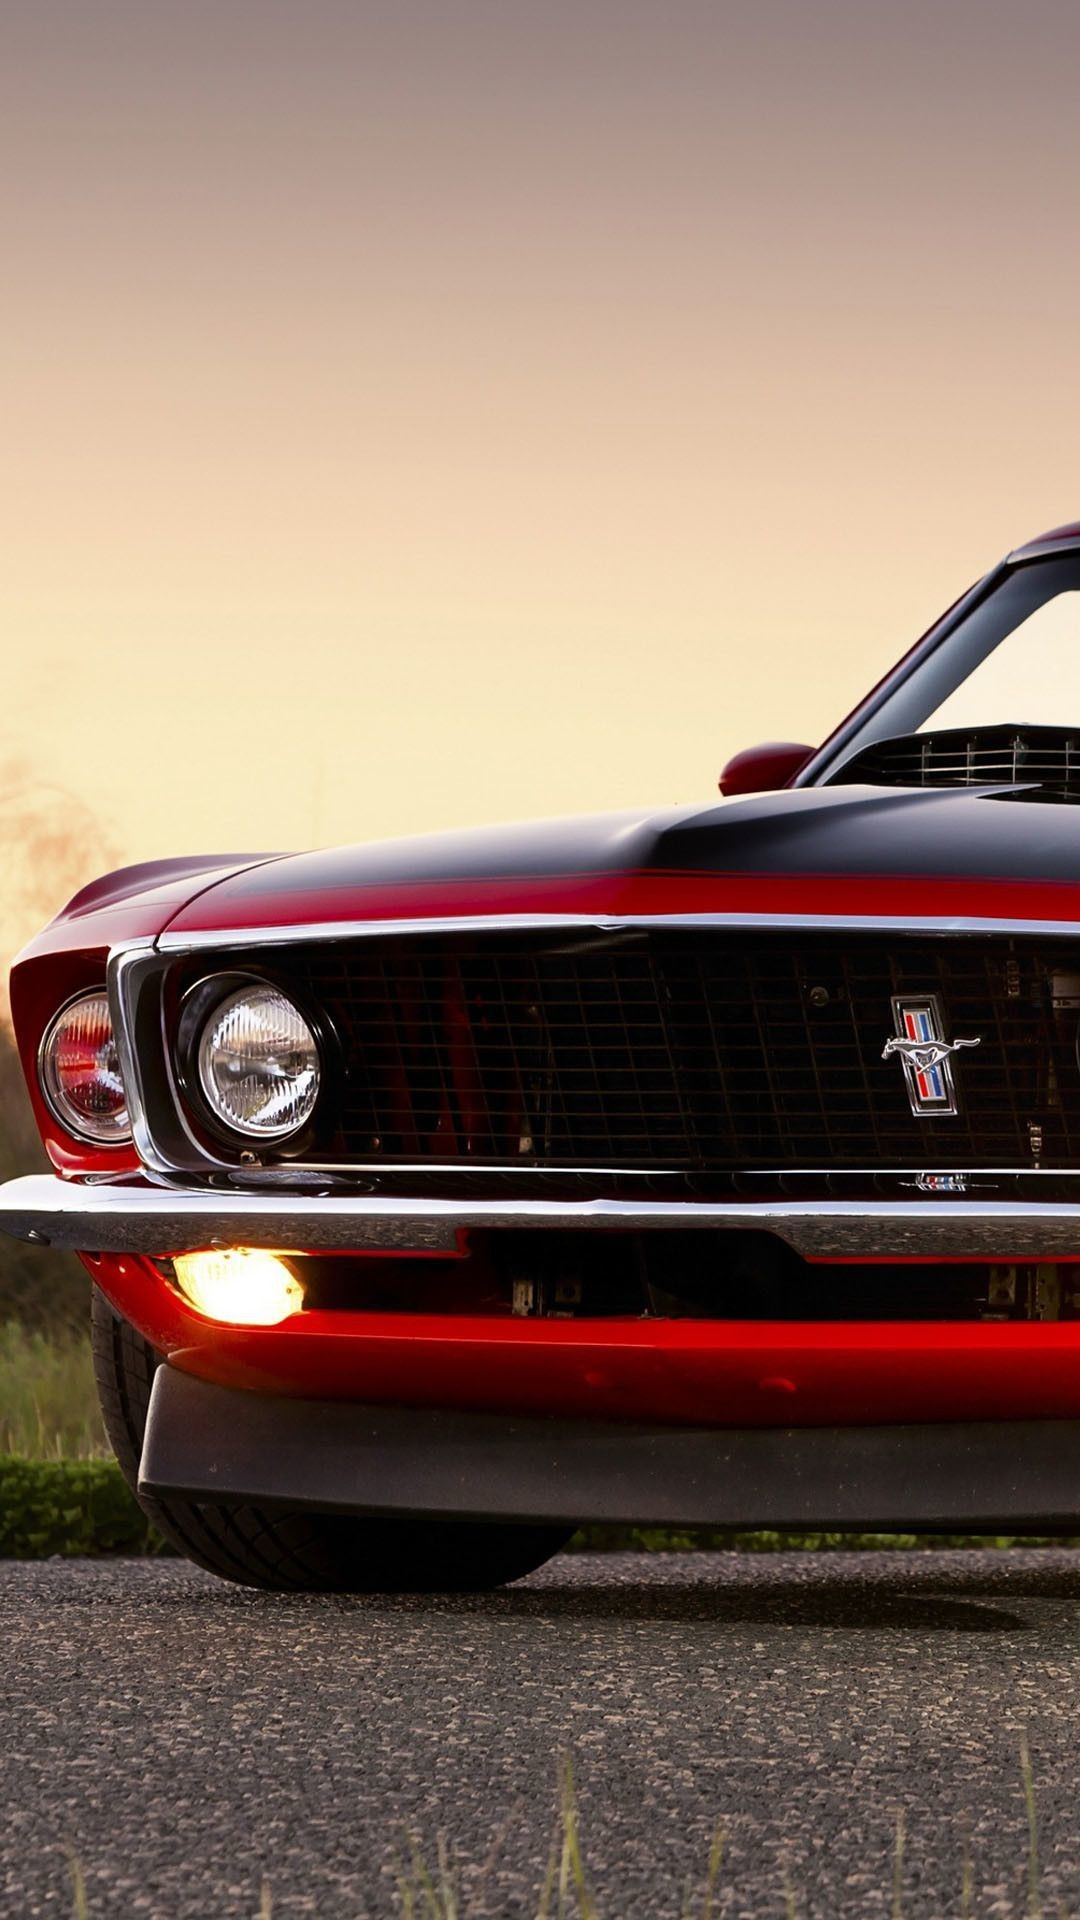 82 Mustang Iphone Wallpapers On Wallpaperplay With Images